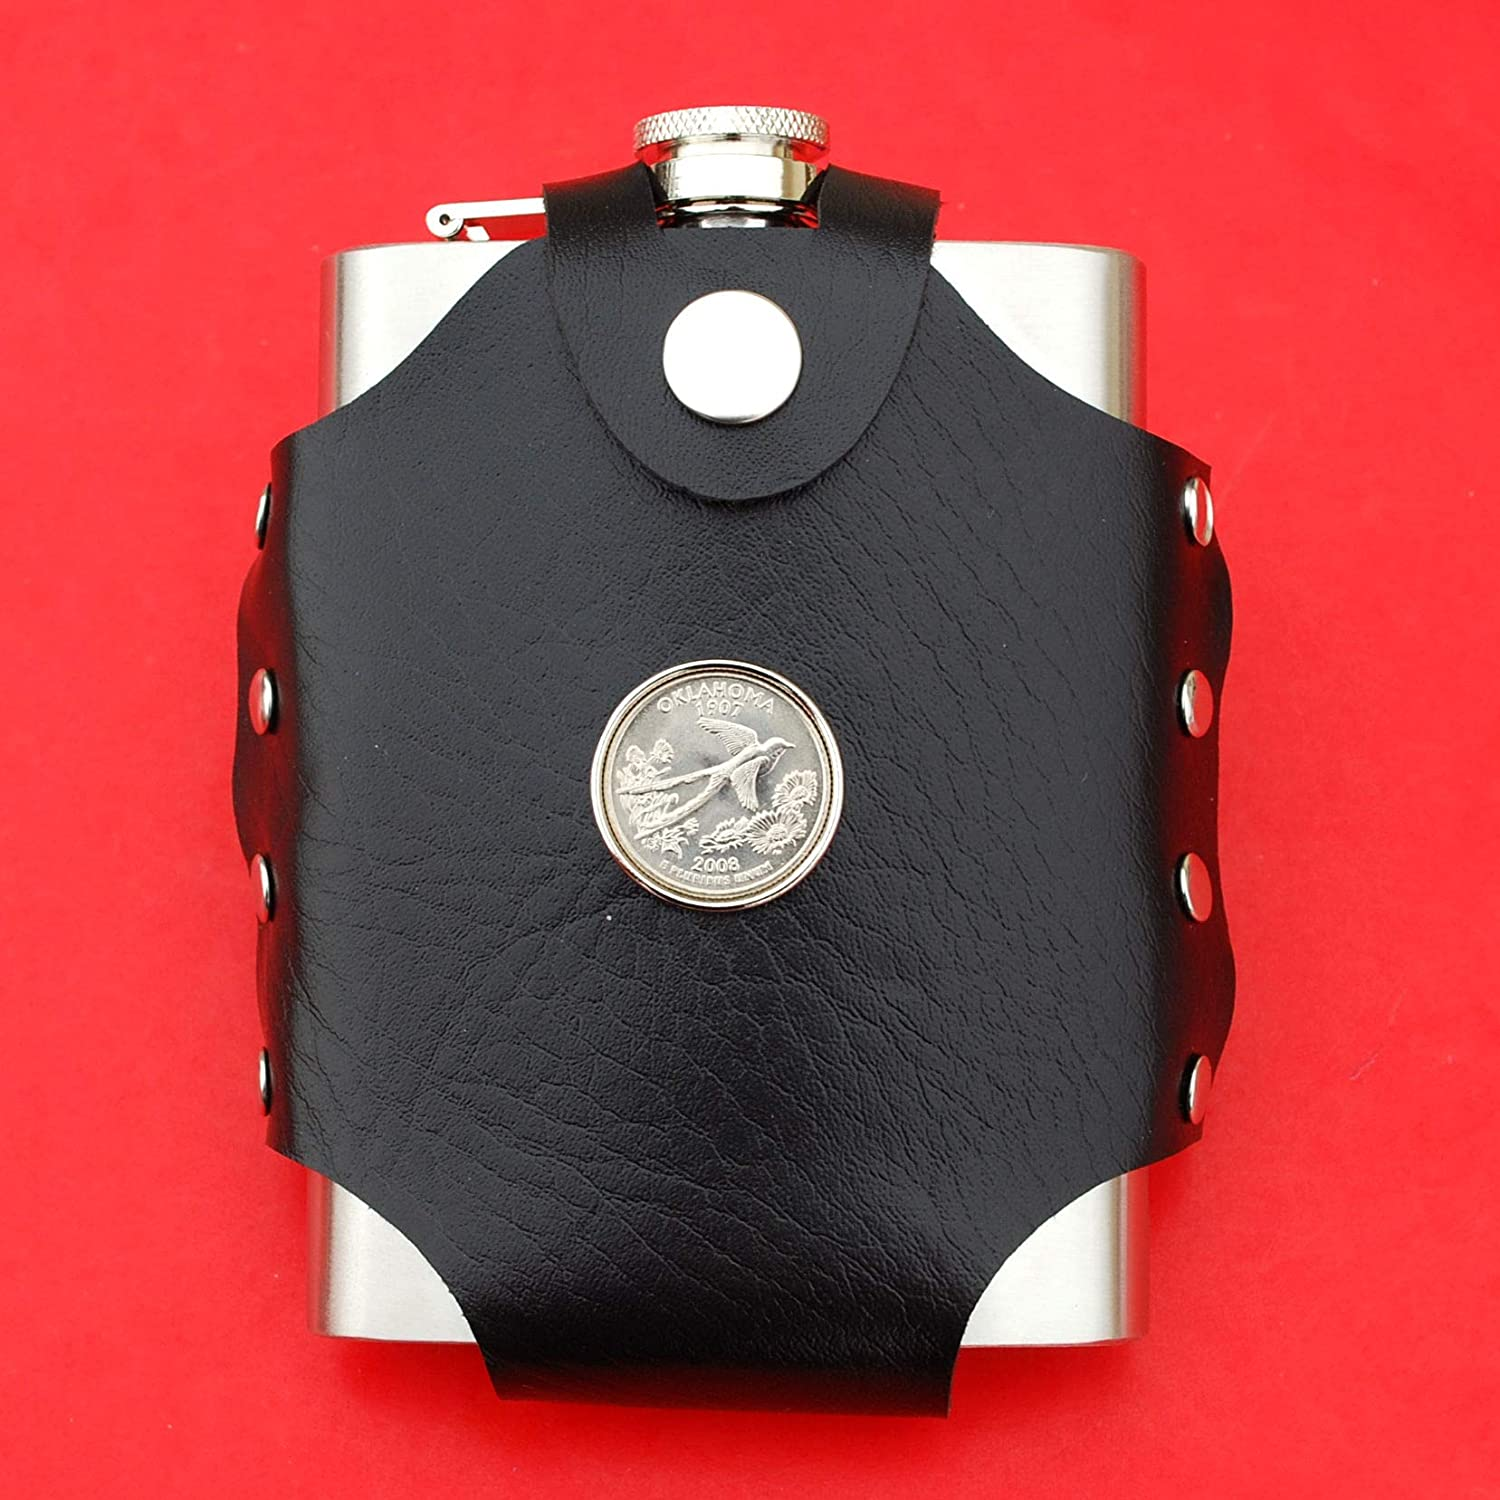 Liquor Water Wine etc. US 2008 Oklahoma State Quarter BU Uncirculated Coin Leak Proof Black PU Leather Wrapped Stainless Steel 8 Oz Hip Flask